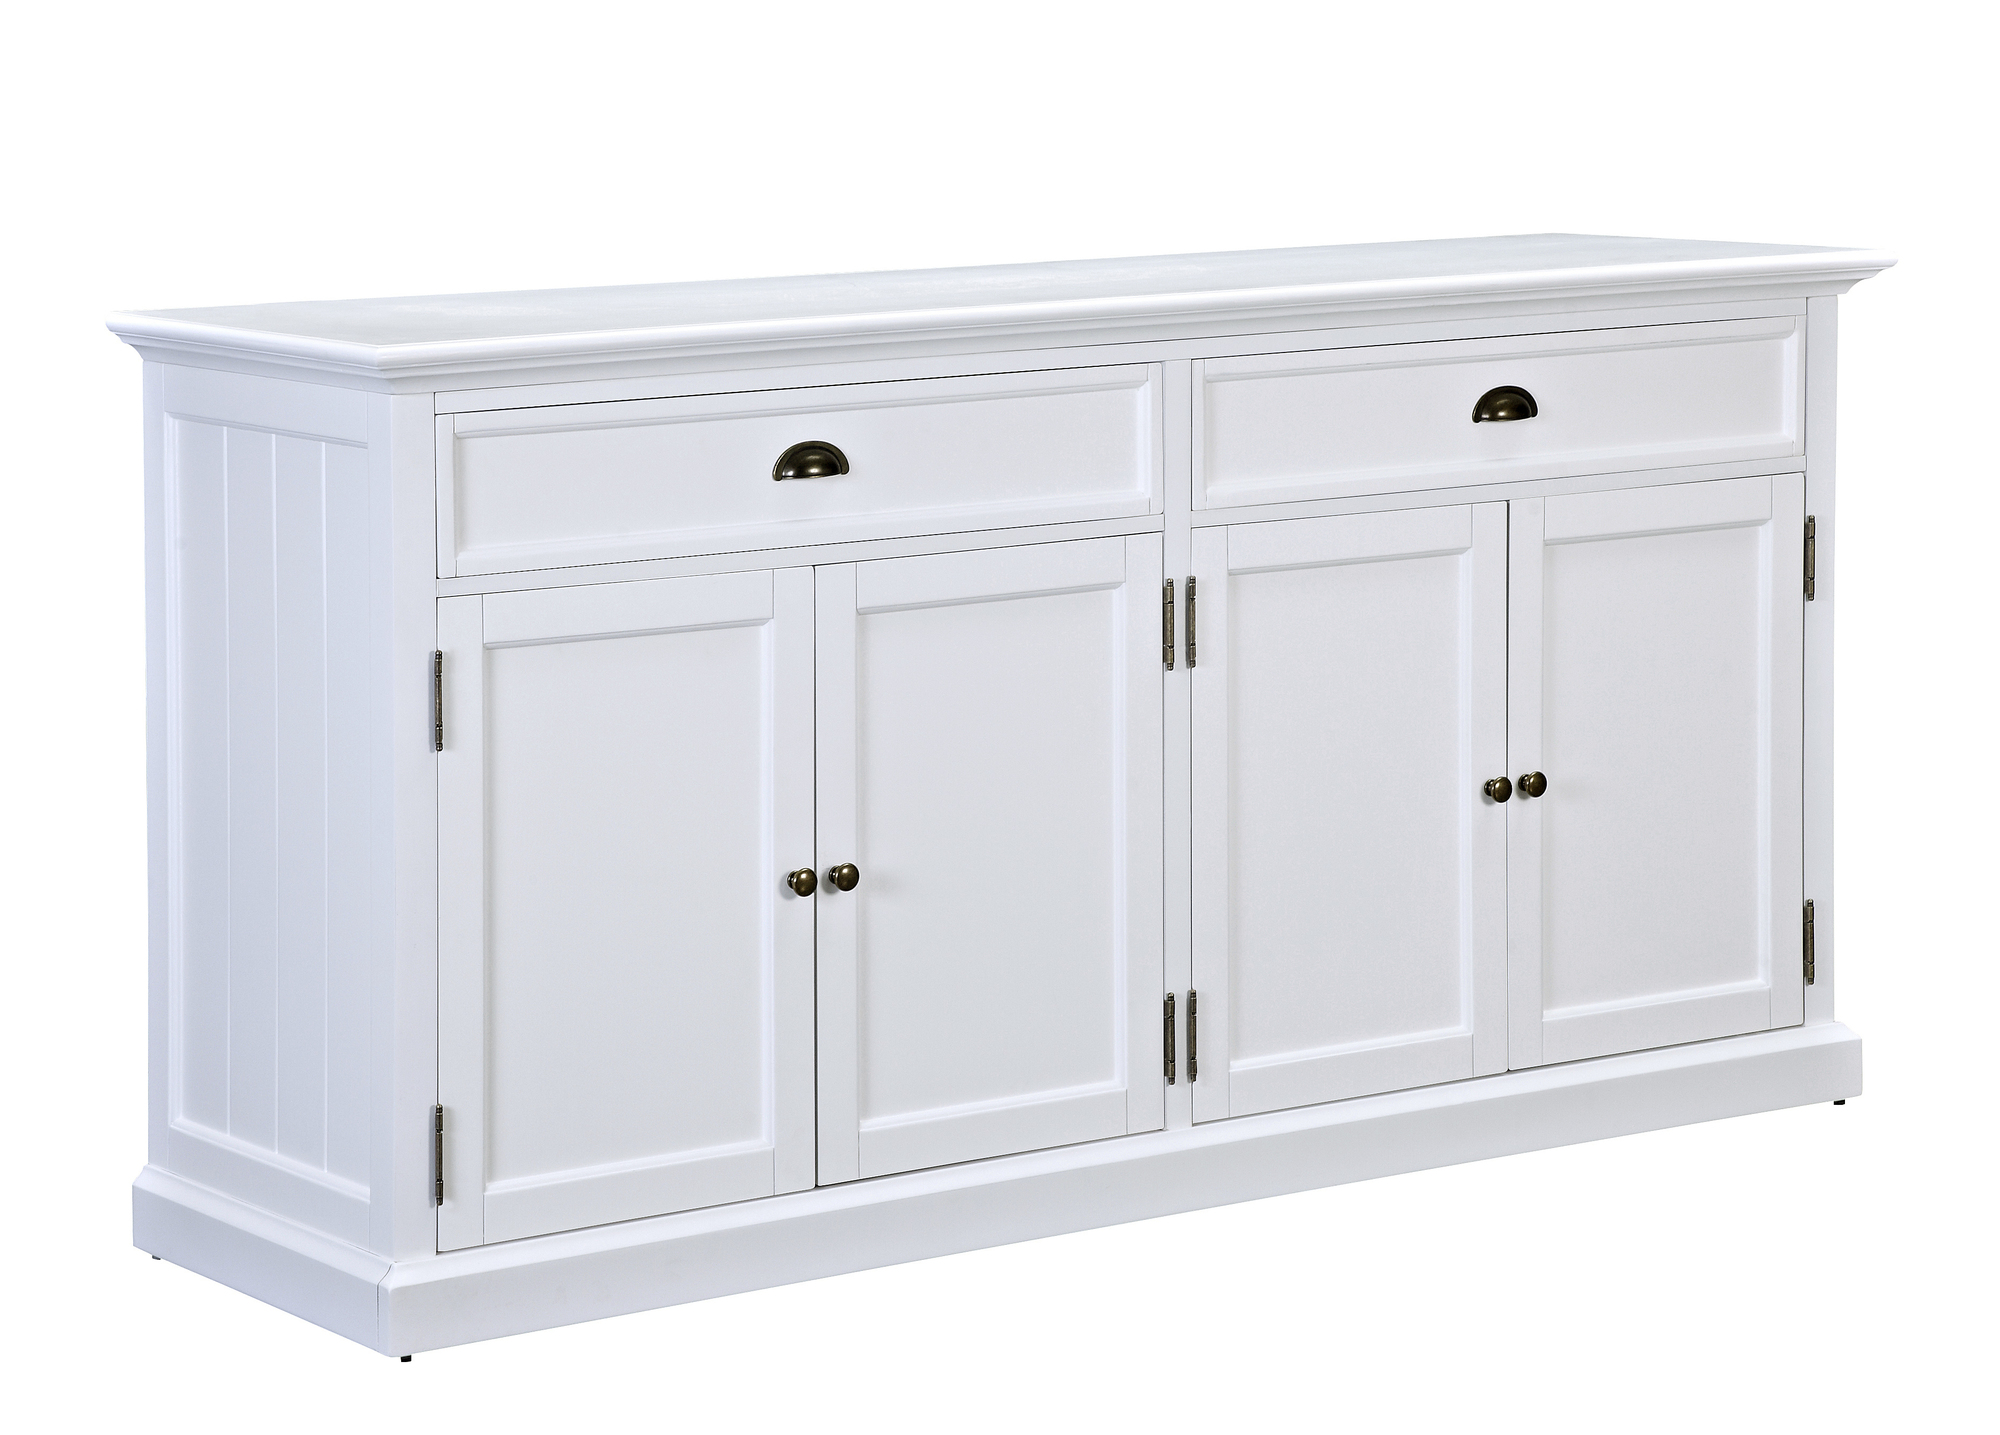 Temple Webster Large White Hamptons Sideboard Buffet Reviews